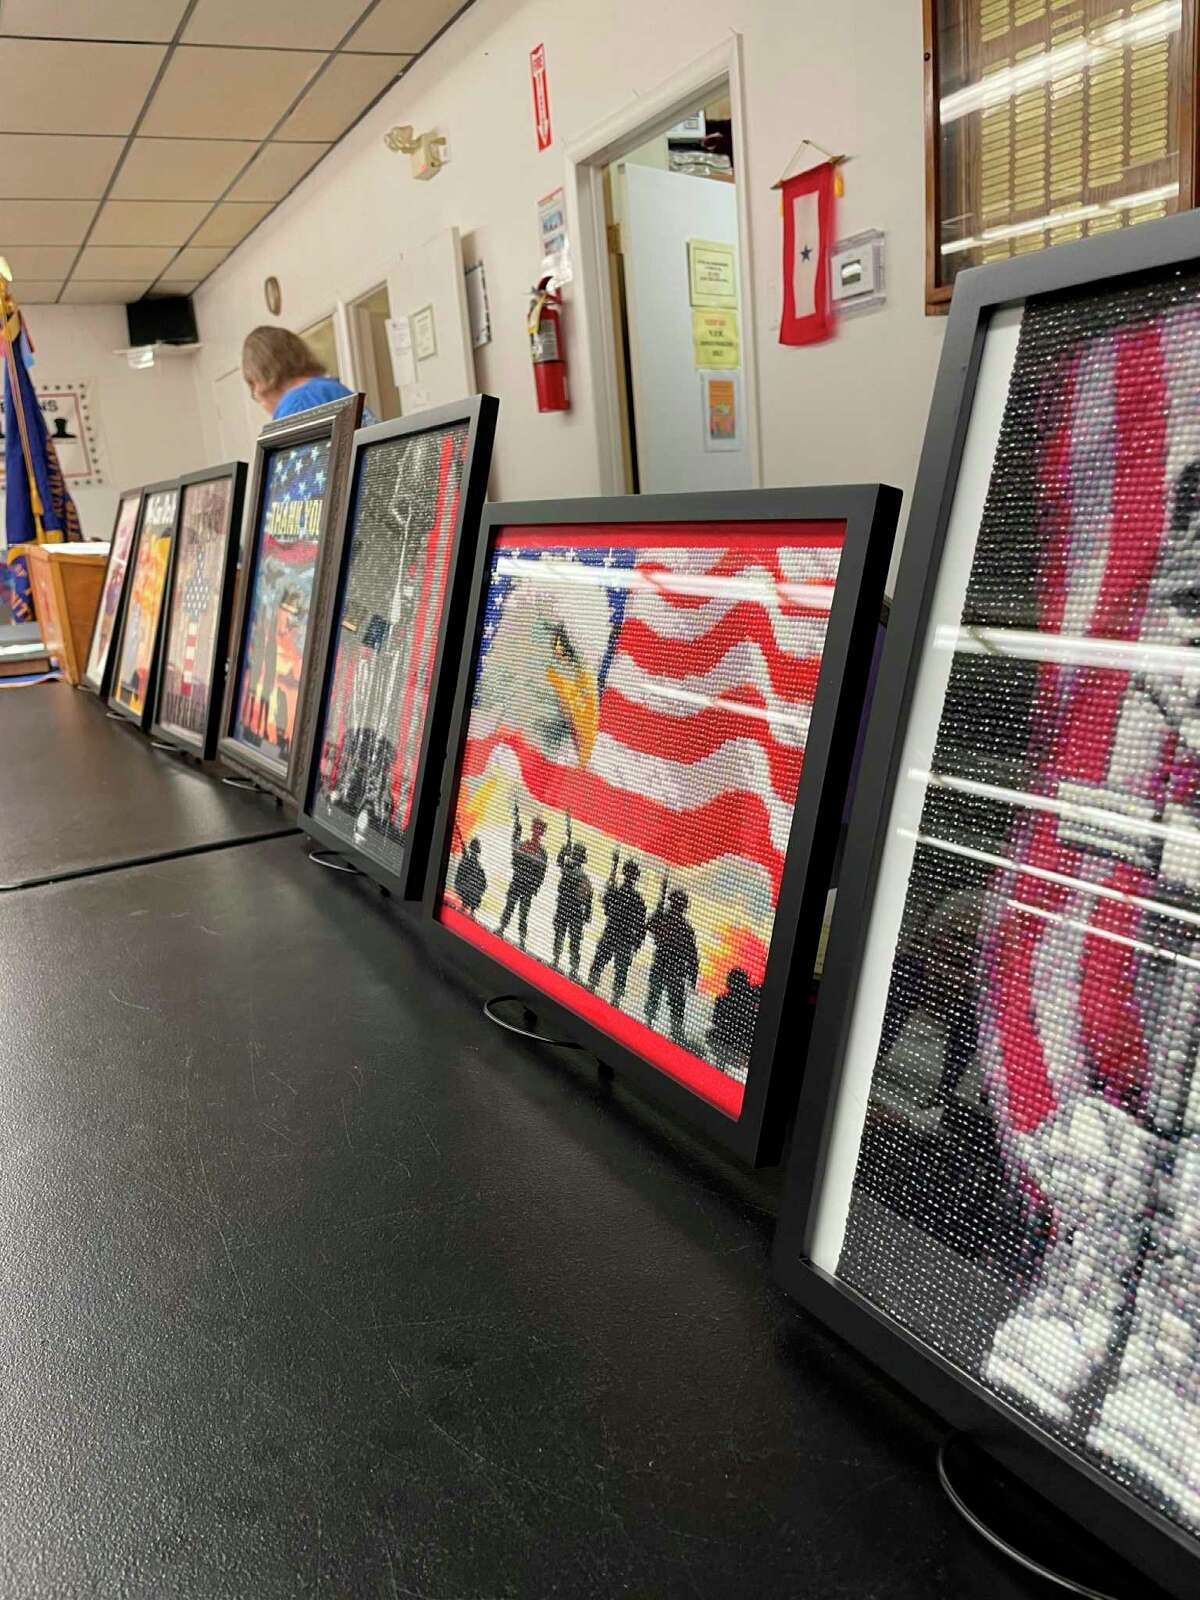 Marjean Nickerson donated 8 individually made 'diamond art' pieces each with military significance to the Mecosta County Veterans of Foreign Wars organization, where several veterans came to view her work. (Pioneer photo/Olivia Fellows)